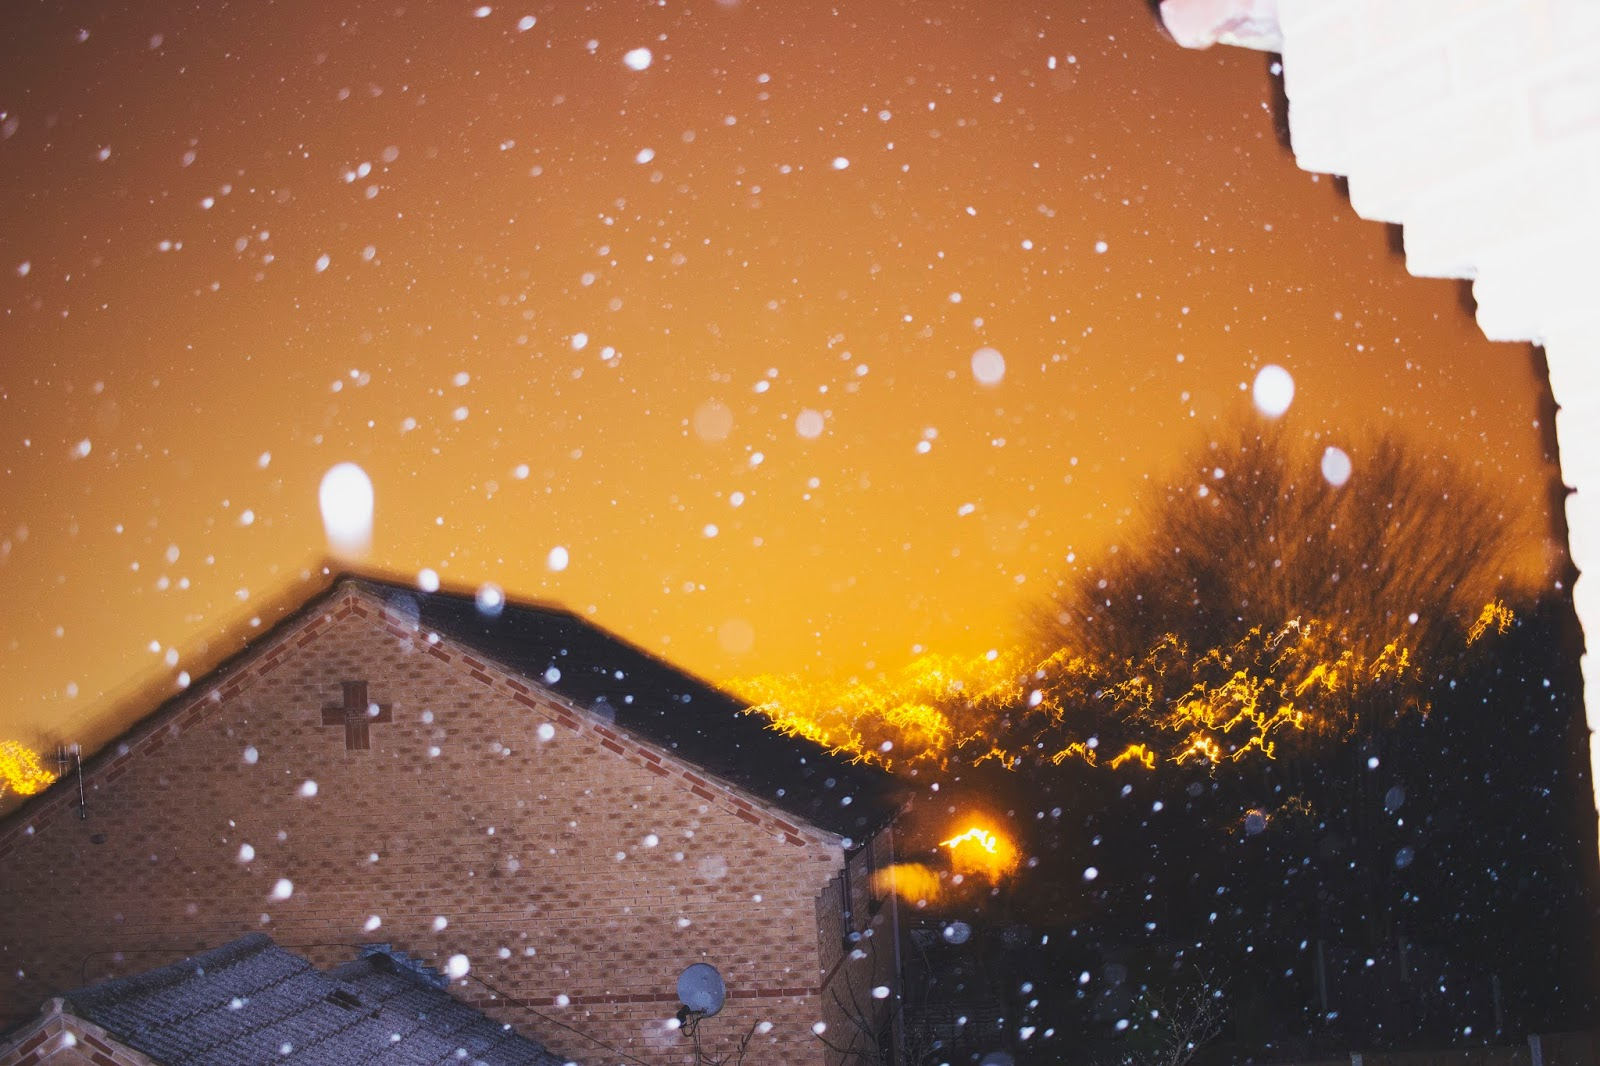 Belper Snow, Snow in Belper, Snow in Derbyshire, Katie Writes,